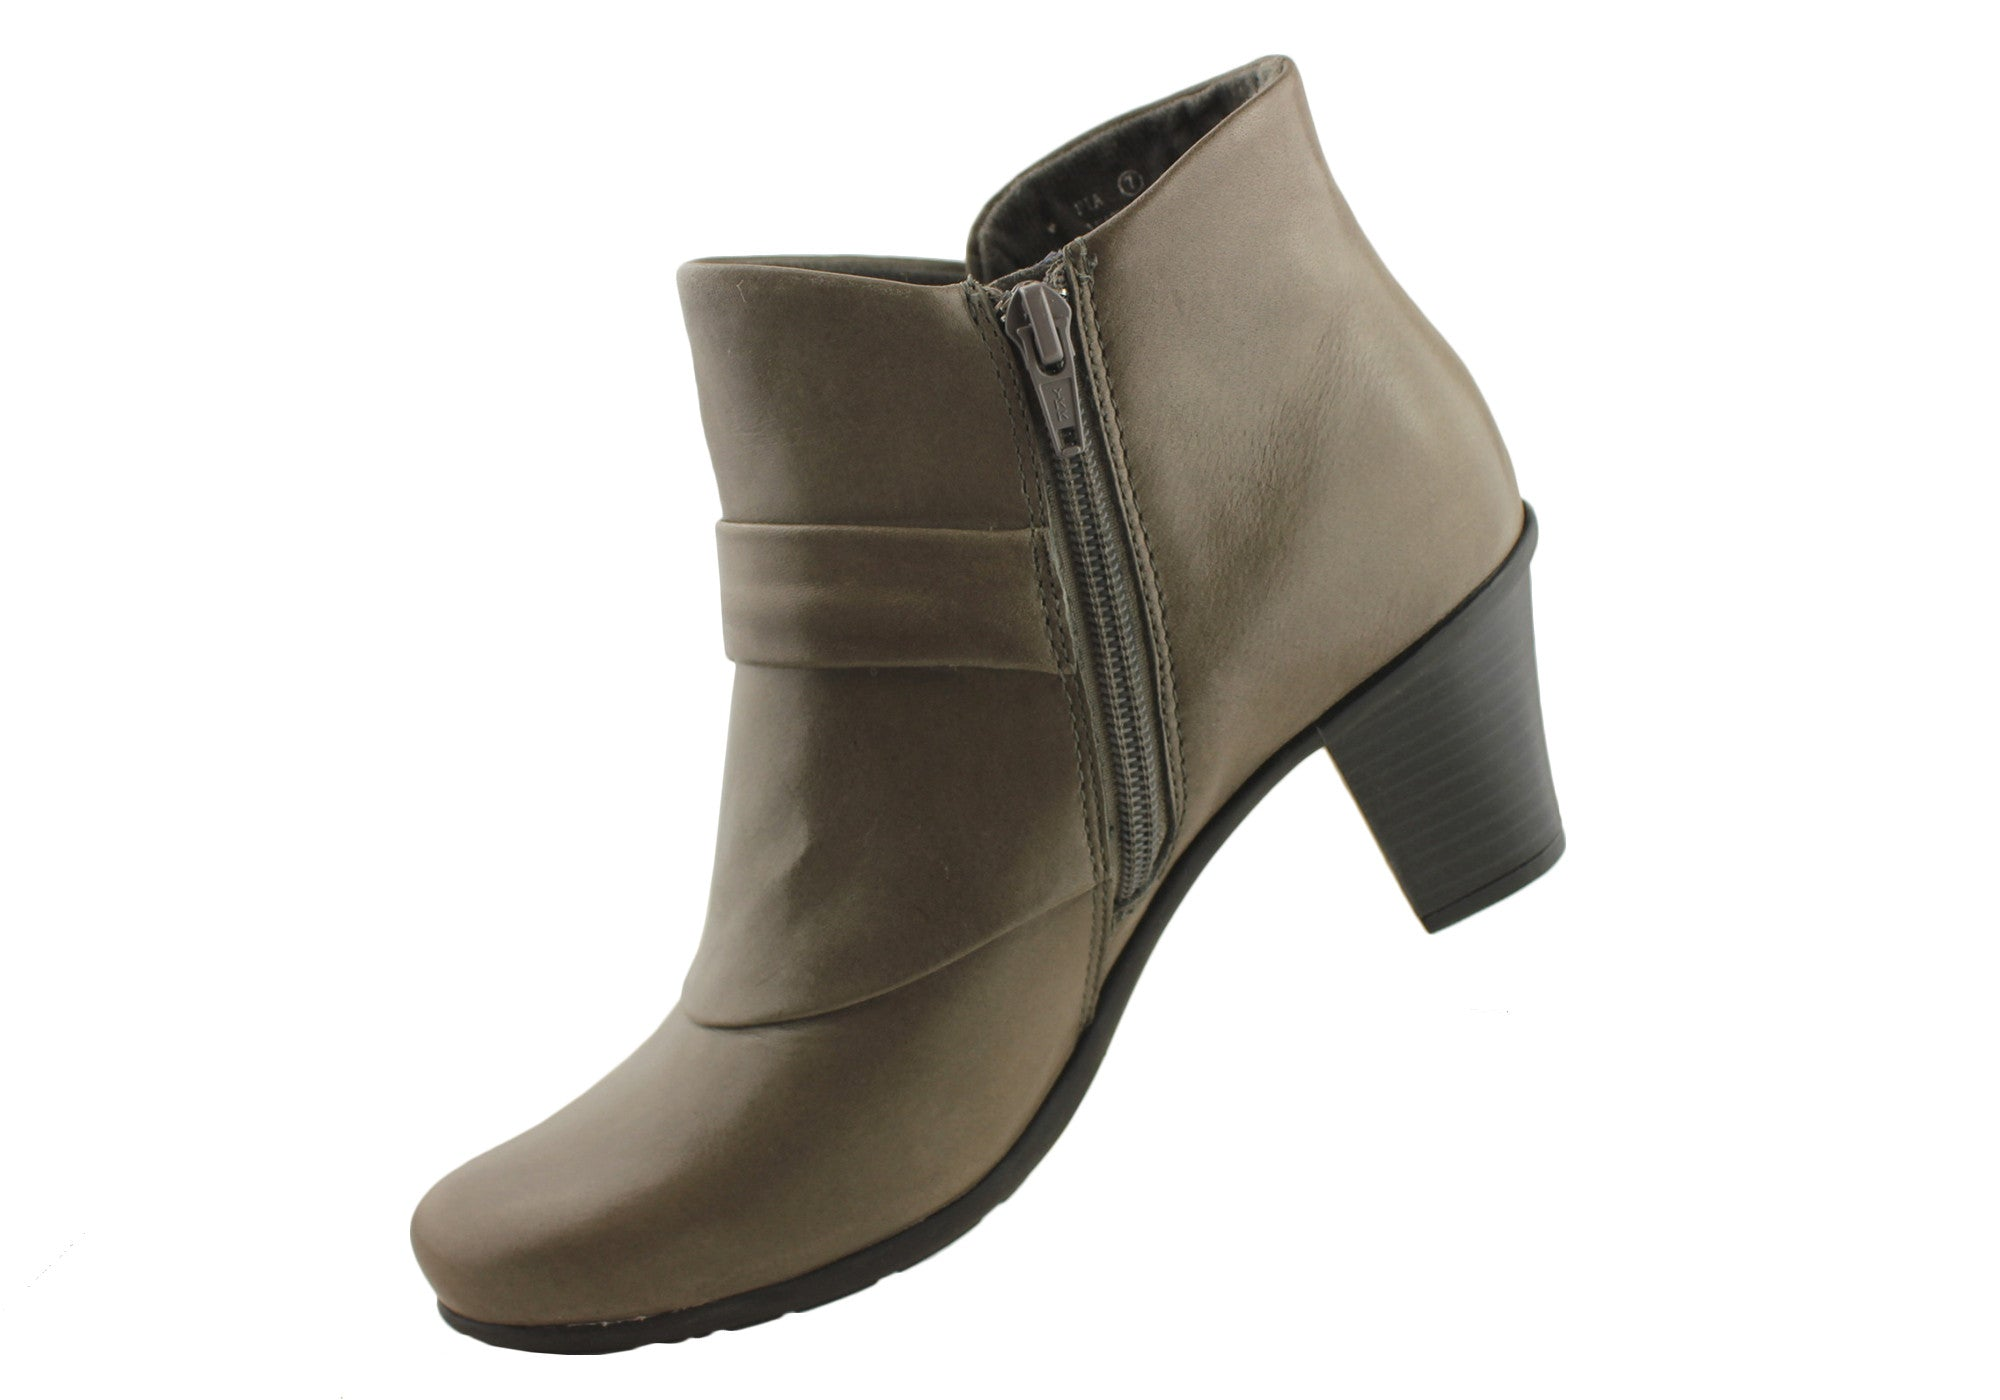 Planet Shoes Pia Womens Leather Medium Heel Ankle Boots